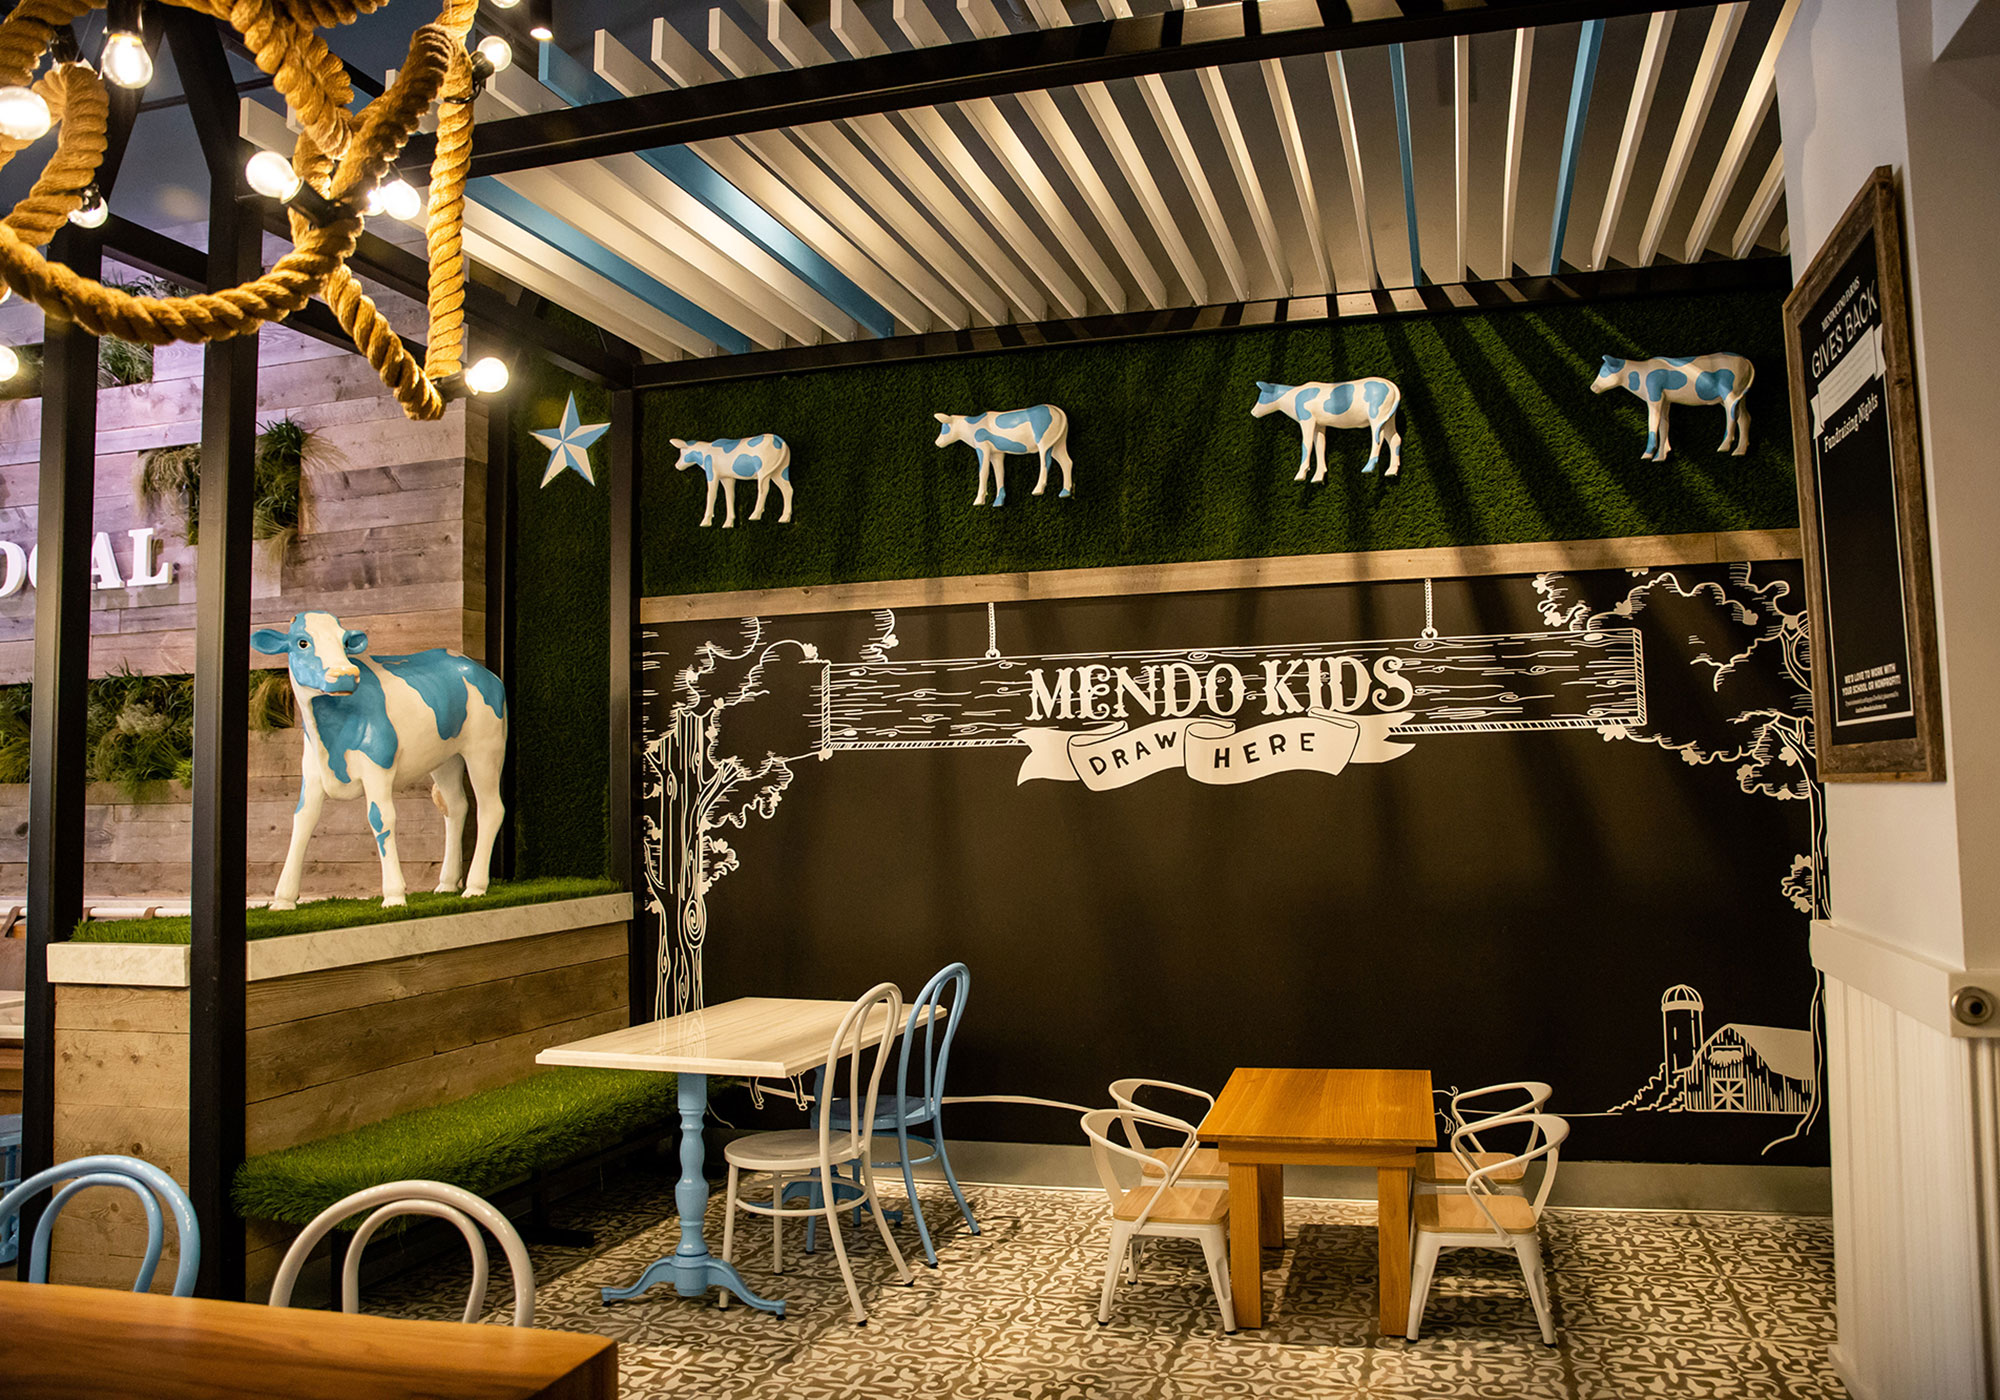 Eating area with Mendo Kids on the wall